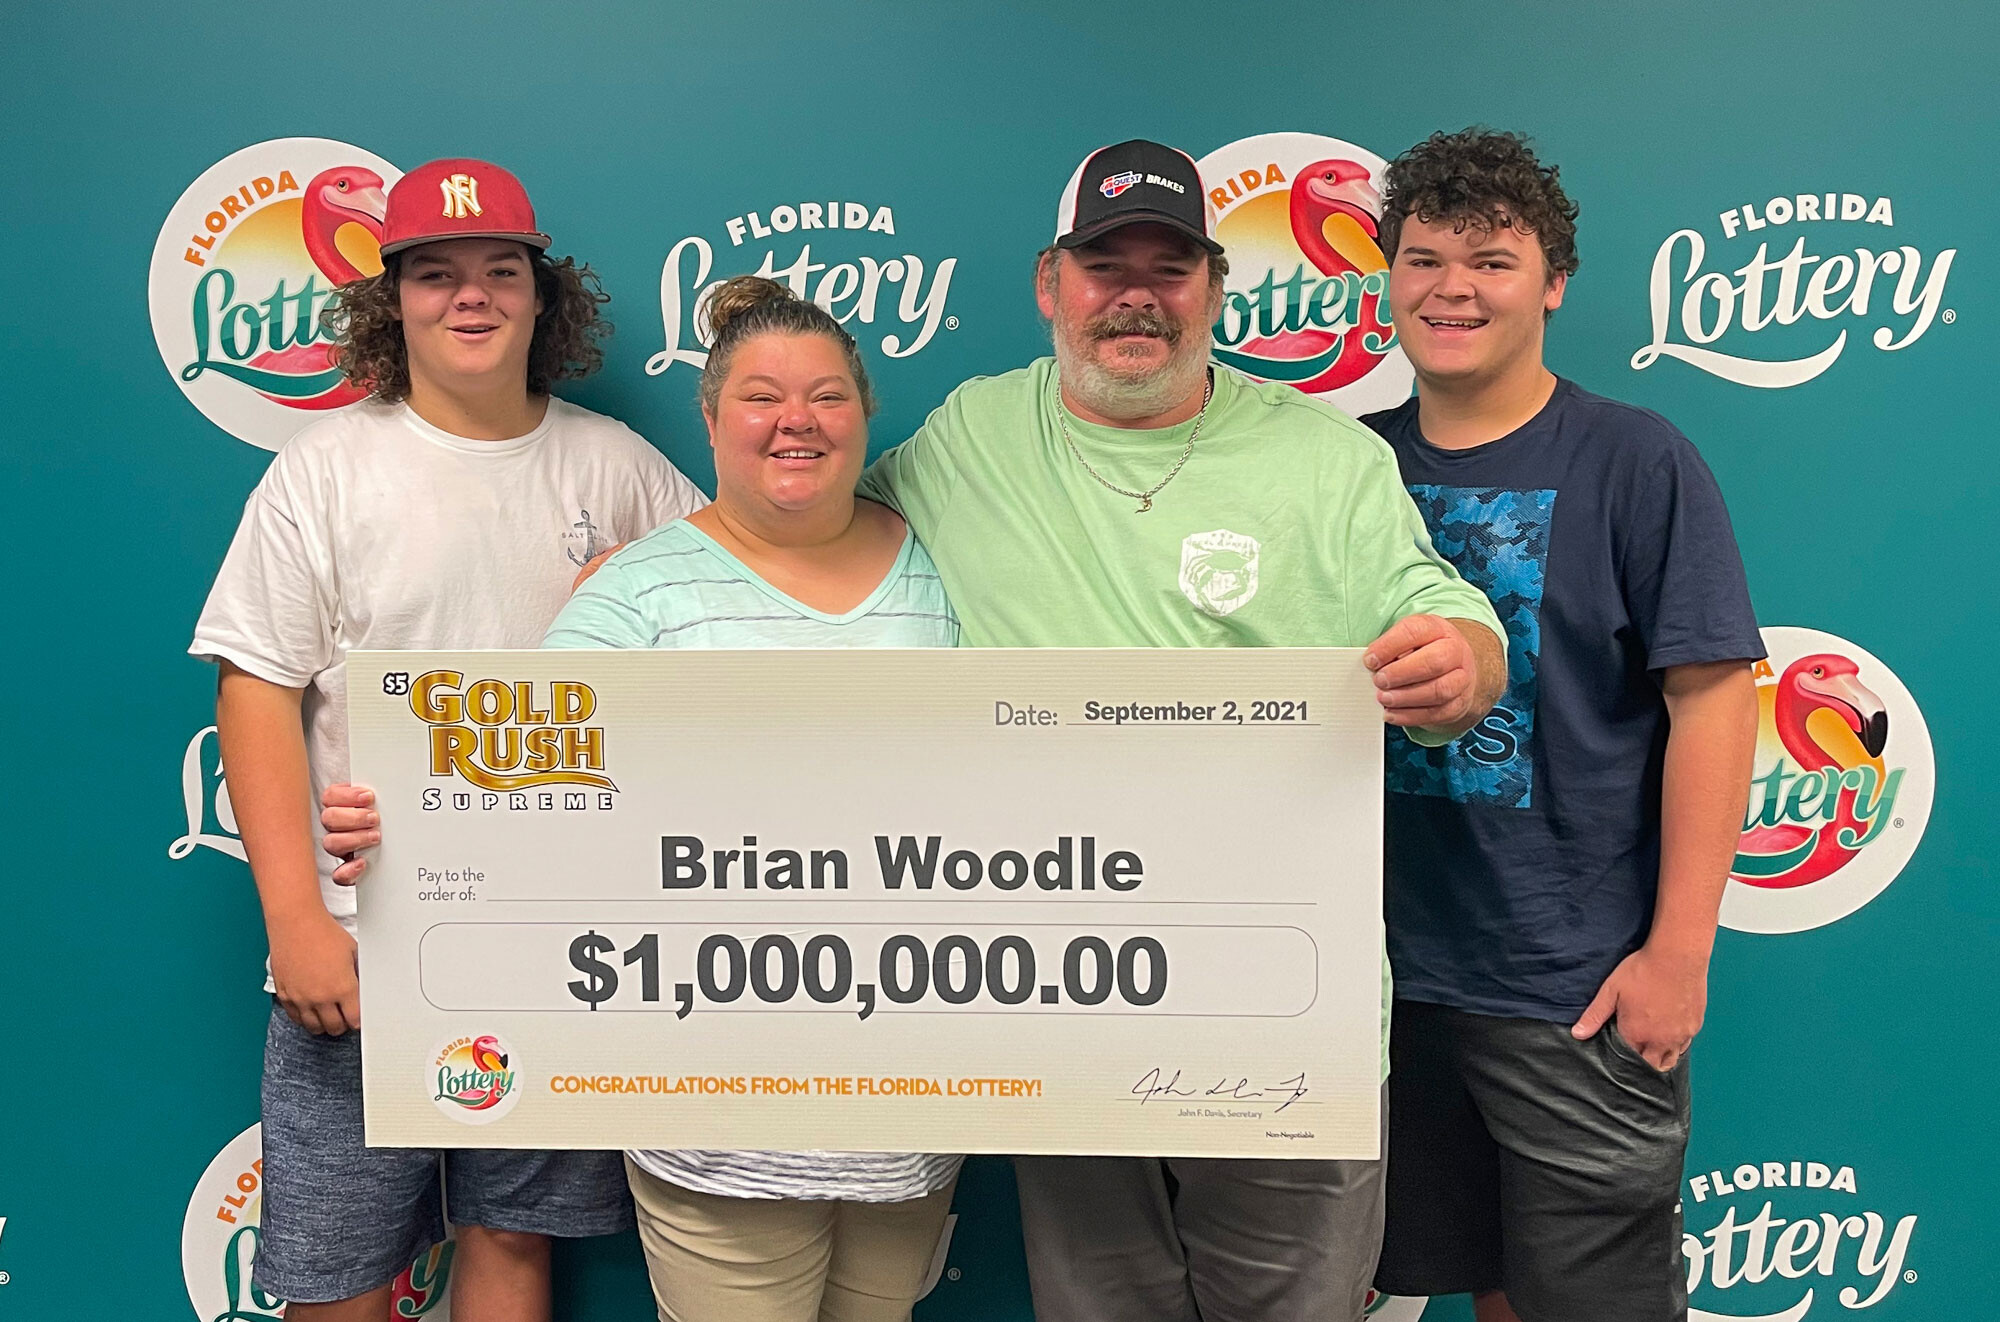 Florida auto repair shop owner wins $1 million lottery on his first day of business